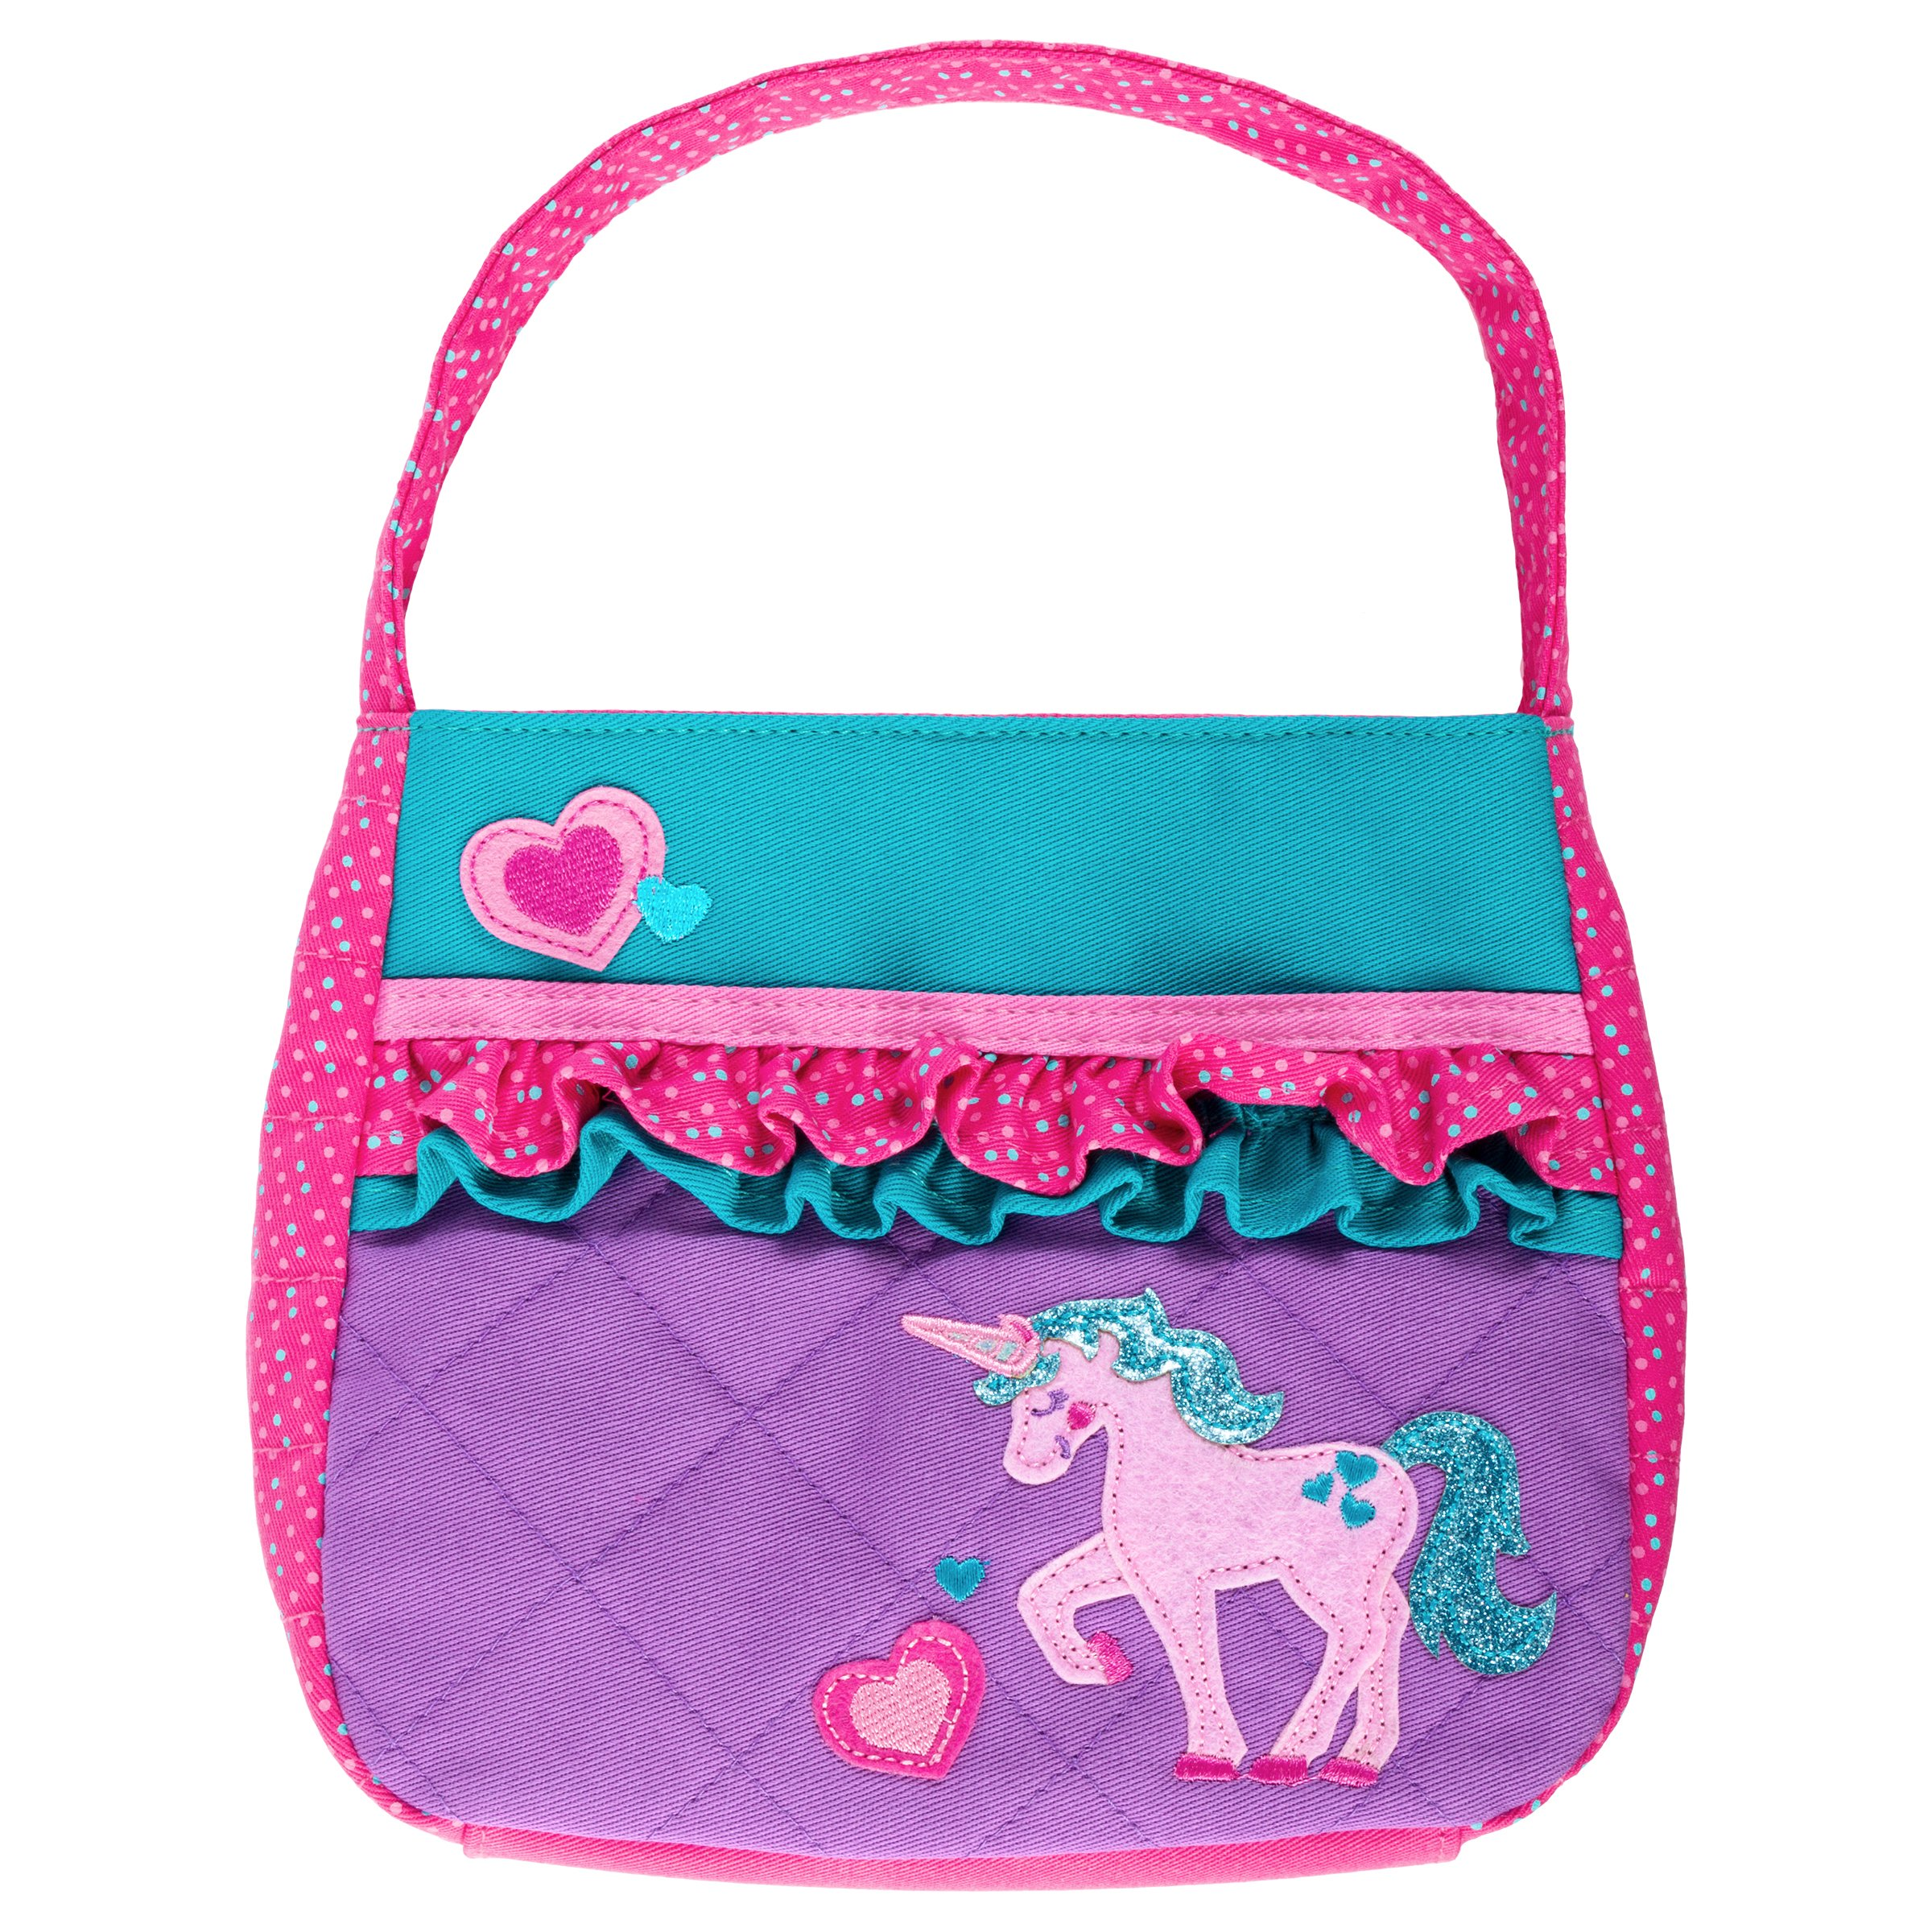 Stephen Joseph Little Girls' Quilted Purse, Unicorn, One Size by Stephen Joseph (Image #1)